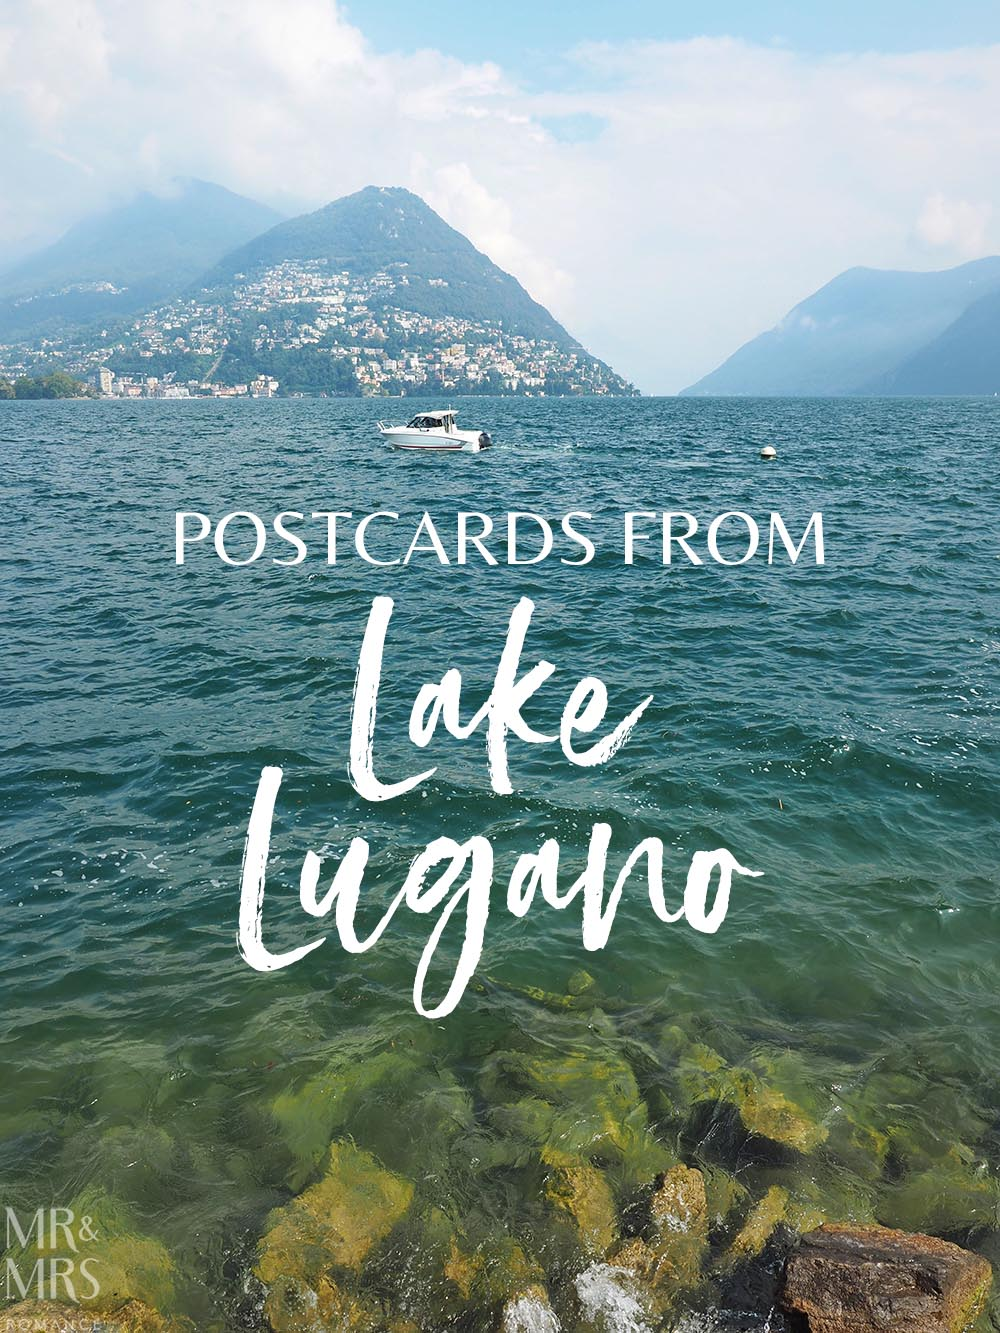 Lake Lugano - postcards from Lake Lugano and 5 things to do there